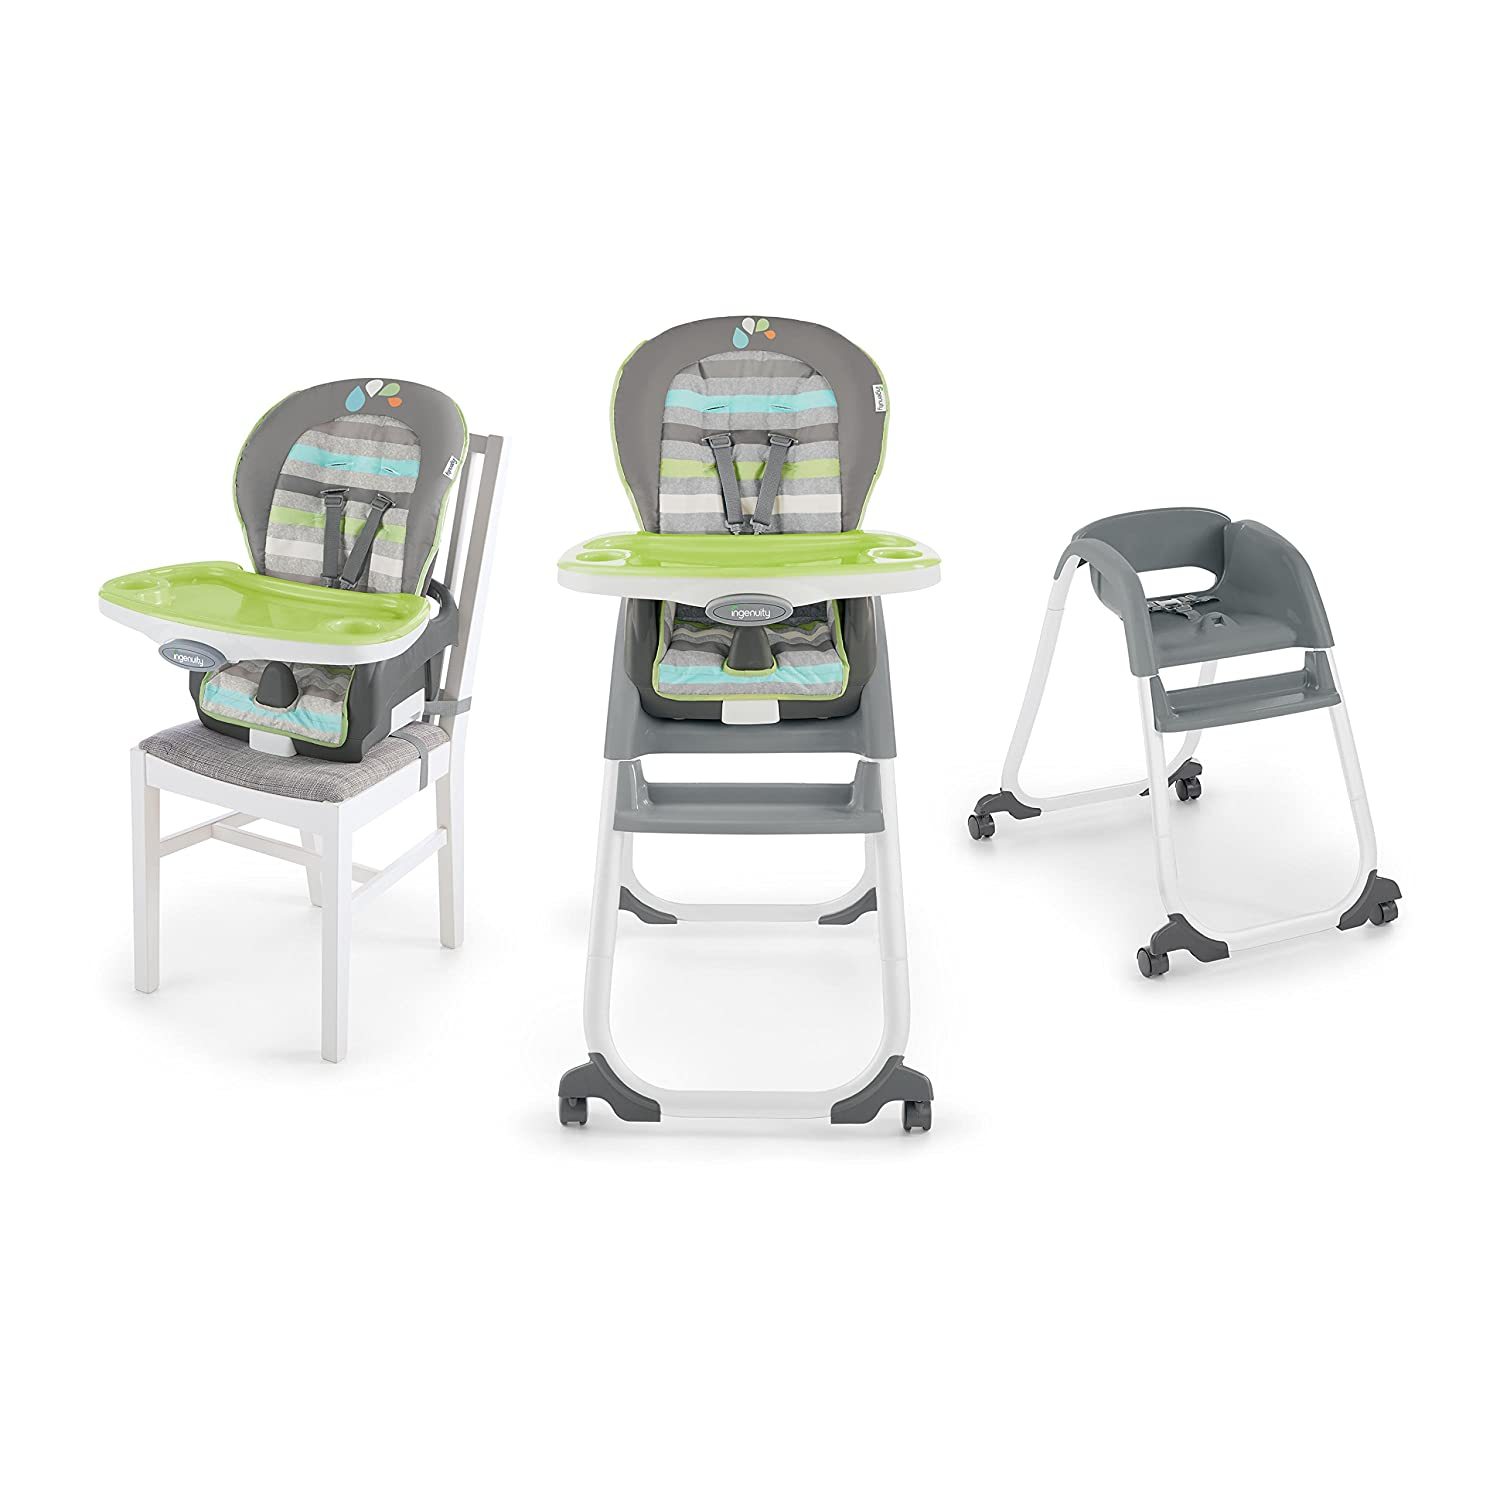 Ingenuity Trio Elite 3-In-1 High Chair Vesper Kids II - (Carson CA) 11605